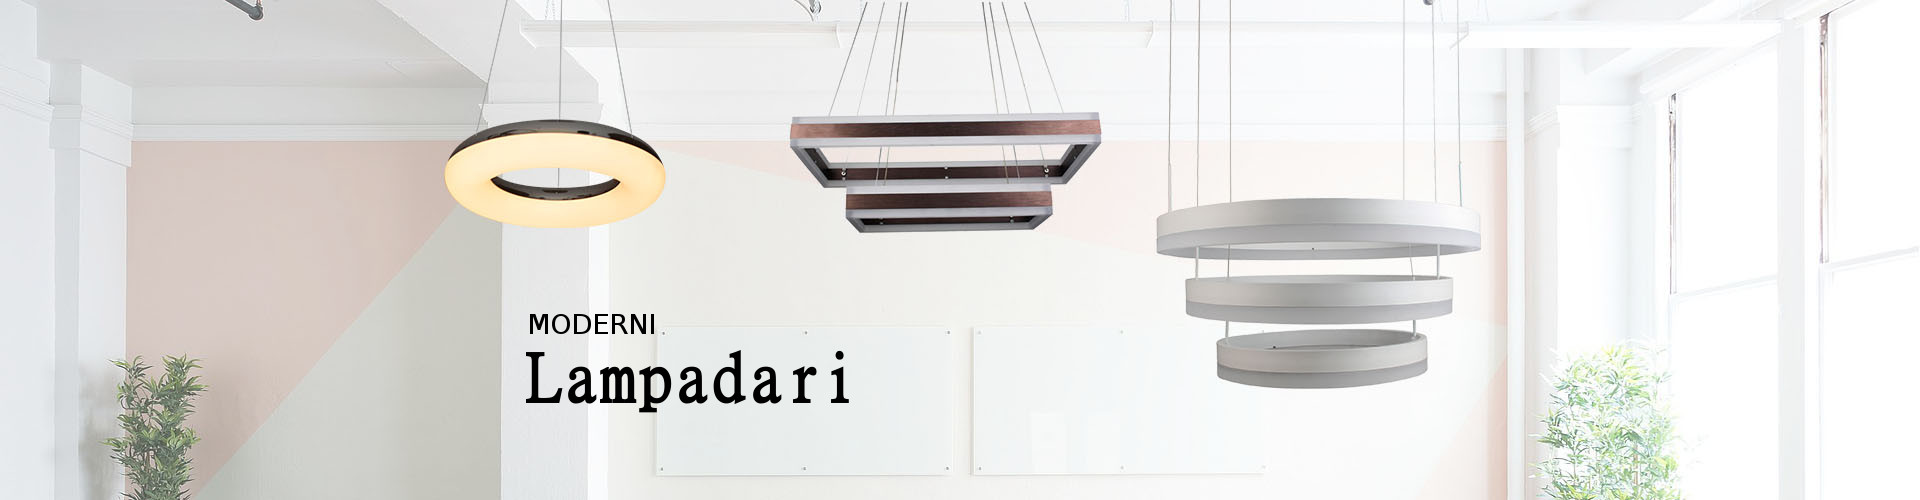 Lampadari moderni a LED by V-TAC